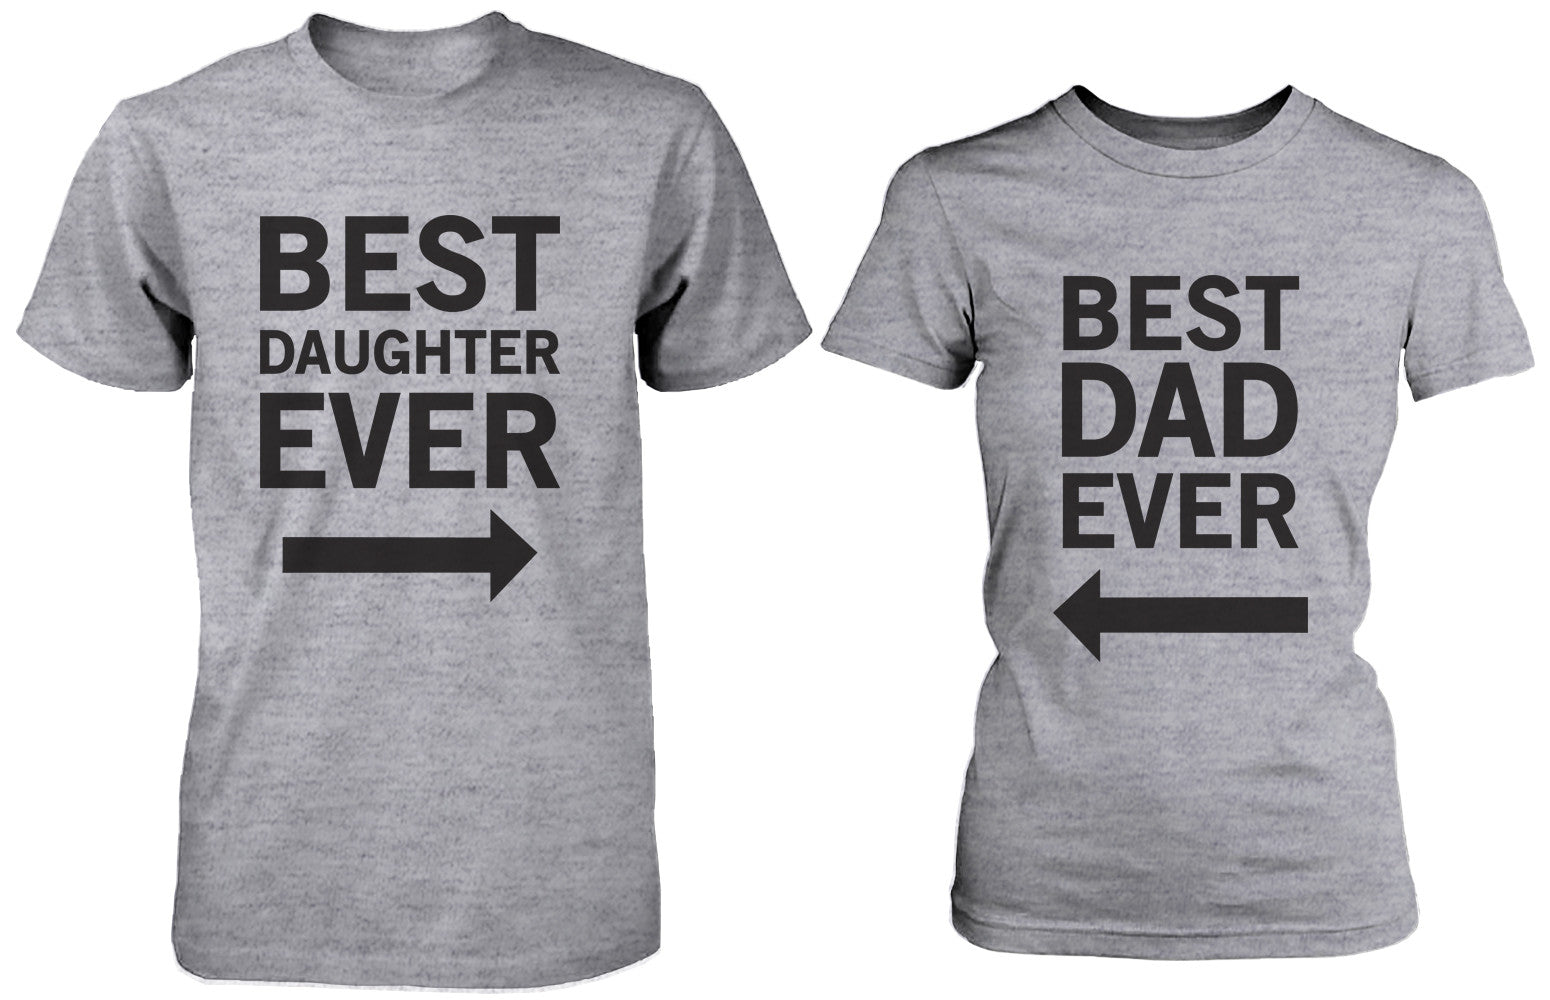 813b1187 Matching Grey T-Shirts Set For Dad and Daughter - Best Dad / Beast ...